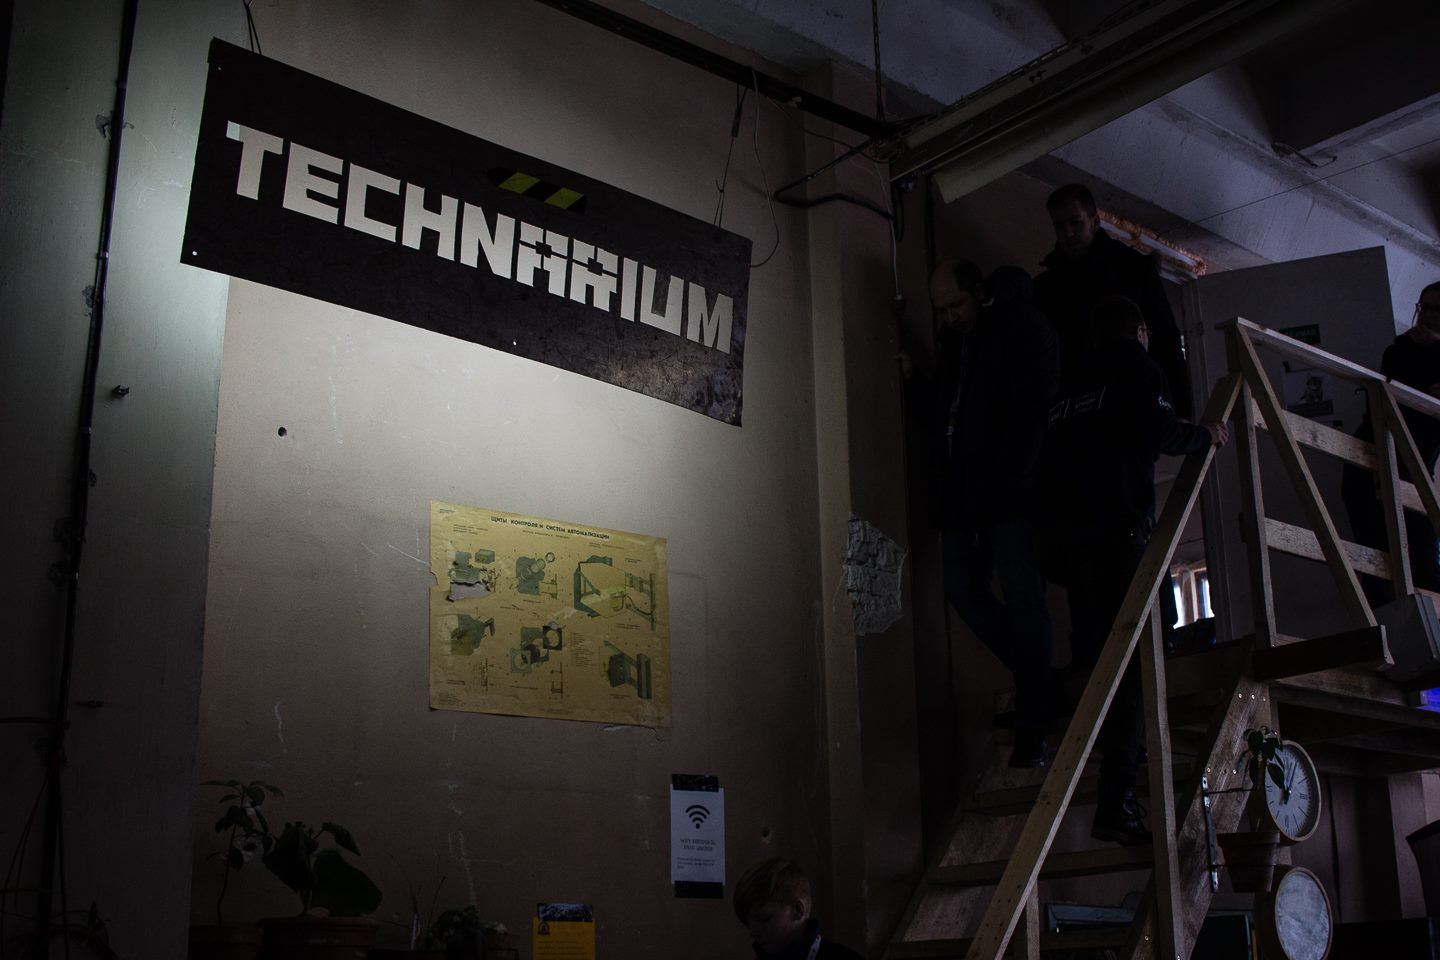 Technarium space